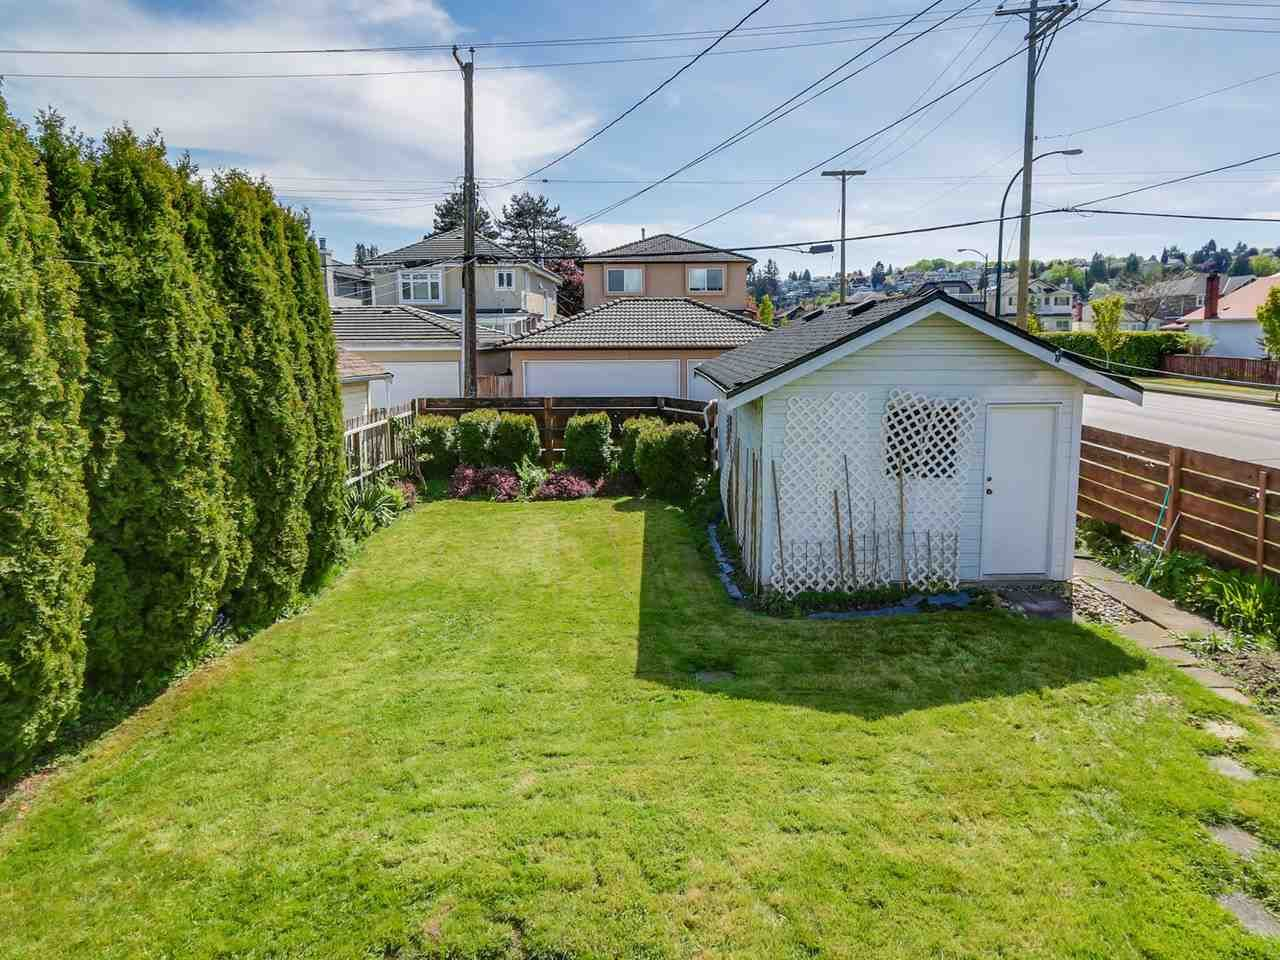 Photo 16: Photos: 2796 W 21ST Avenue in Vancouver: Arbutus House for sale (Vancouver West)  : MLS®# R2078868